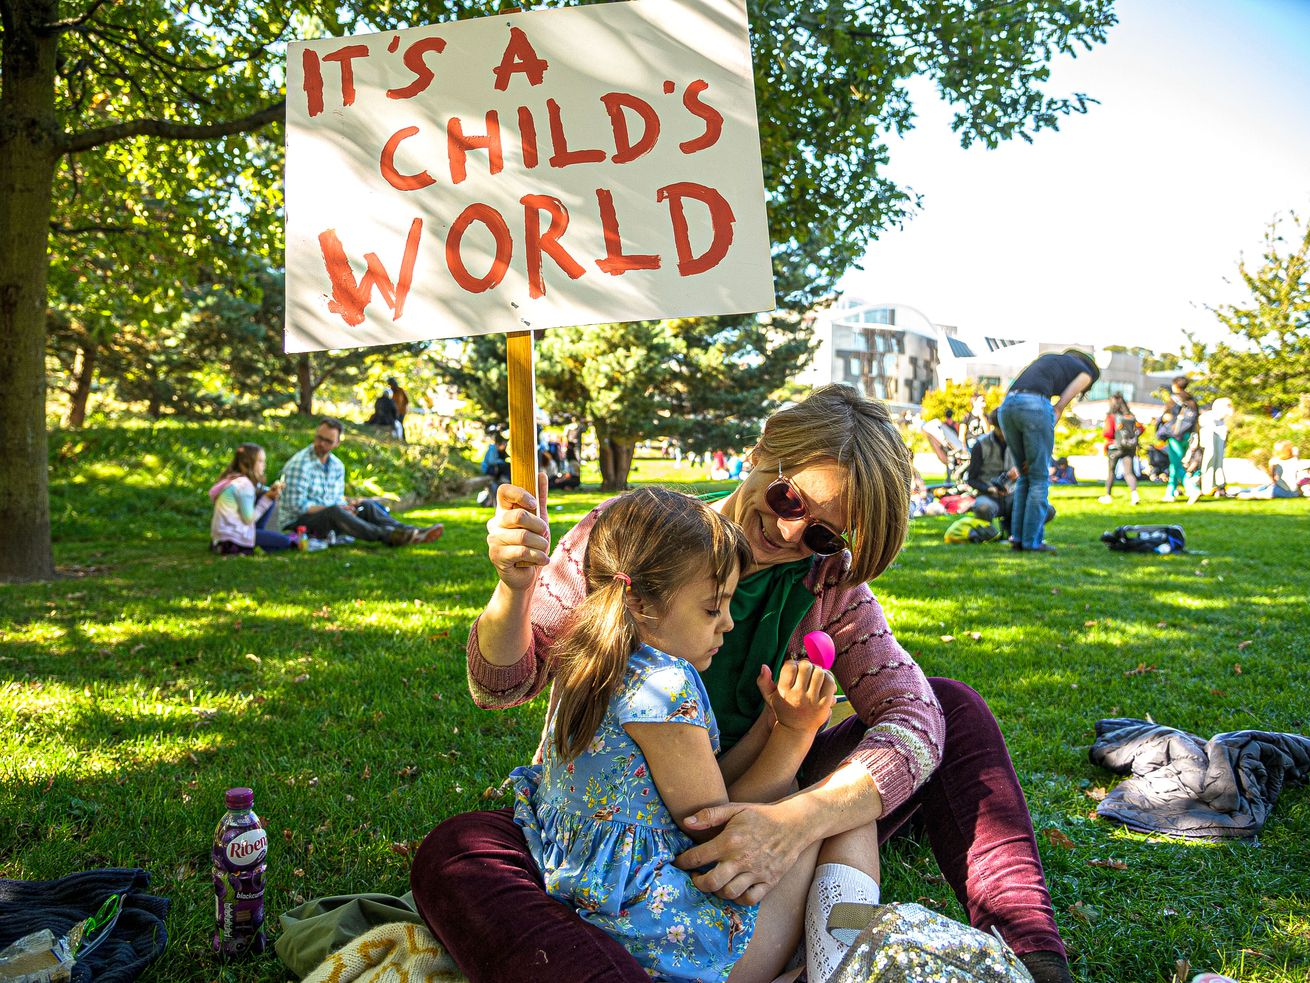 """A mother embracing her daughter holds a placard that says """"It's a child's world"""" at the March through Edinburgh, part of the global climate strike movement."""